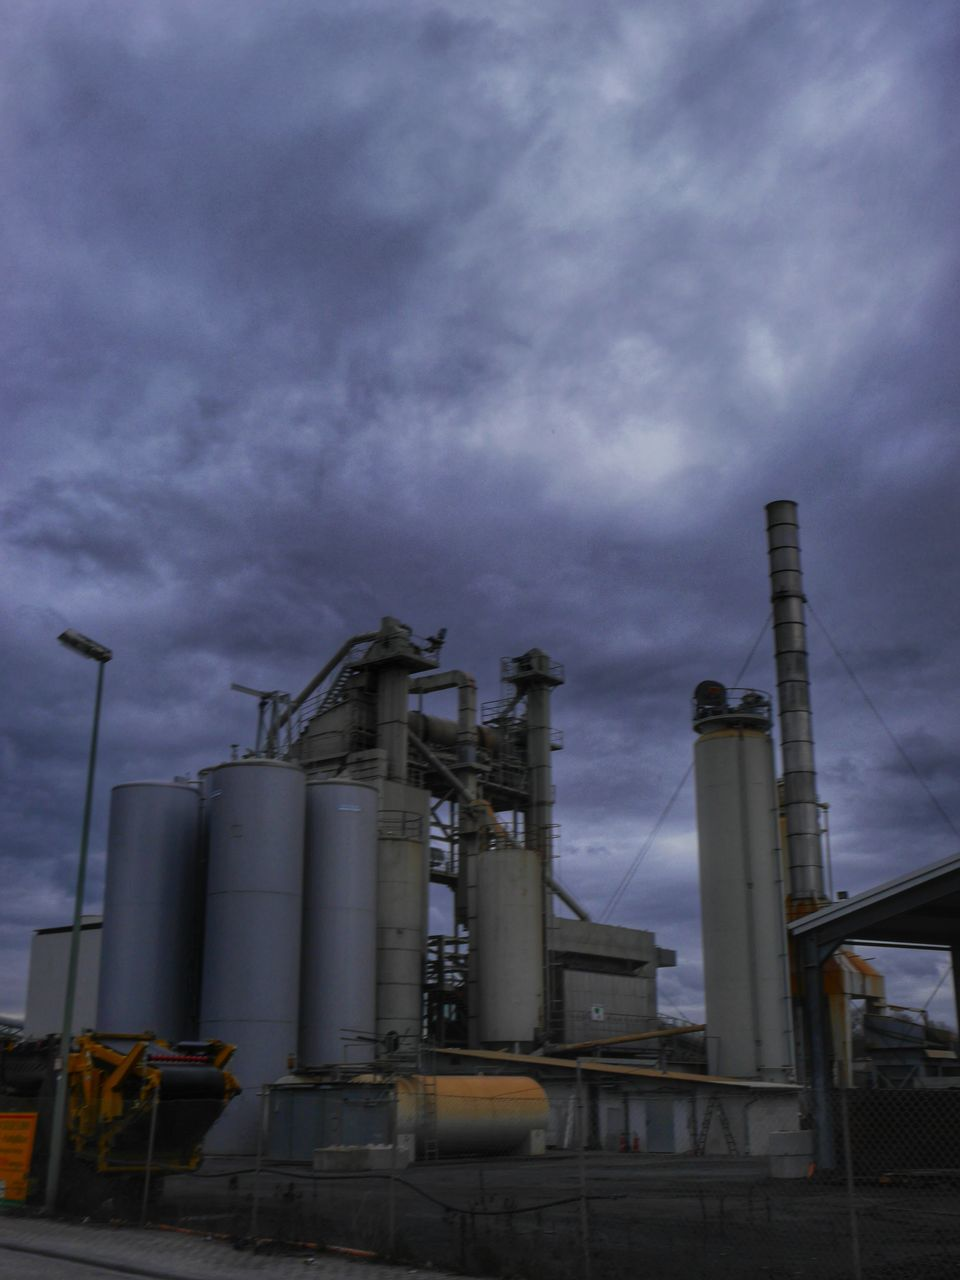 Low Angle View Of Industrial Equipment Against Cloudy Sky At Dusk